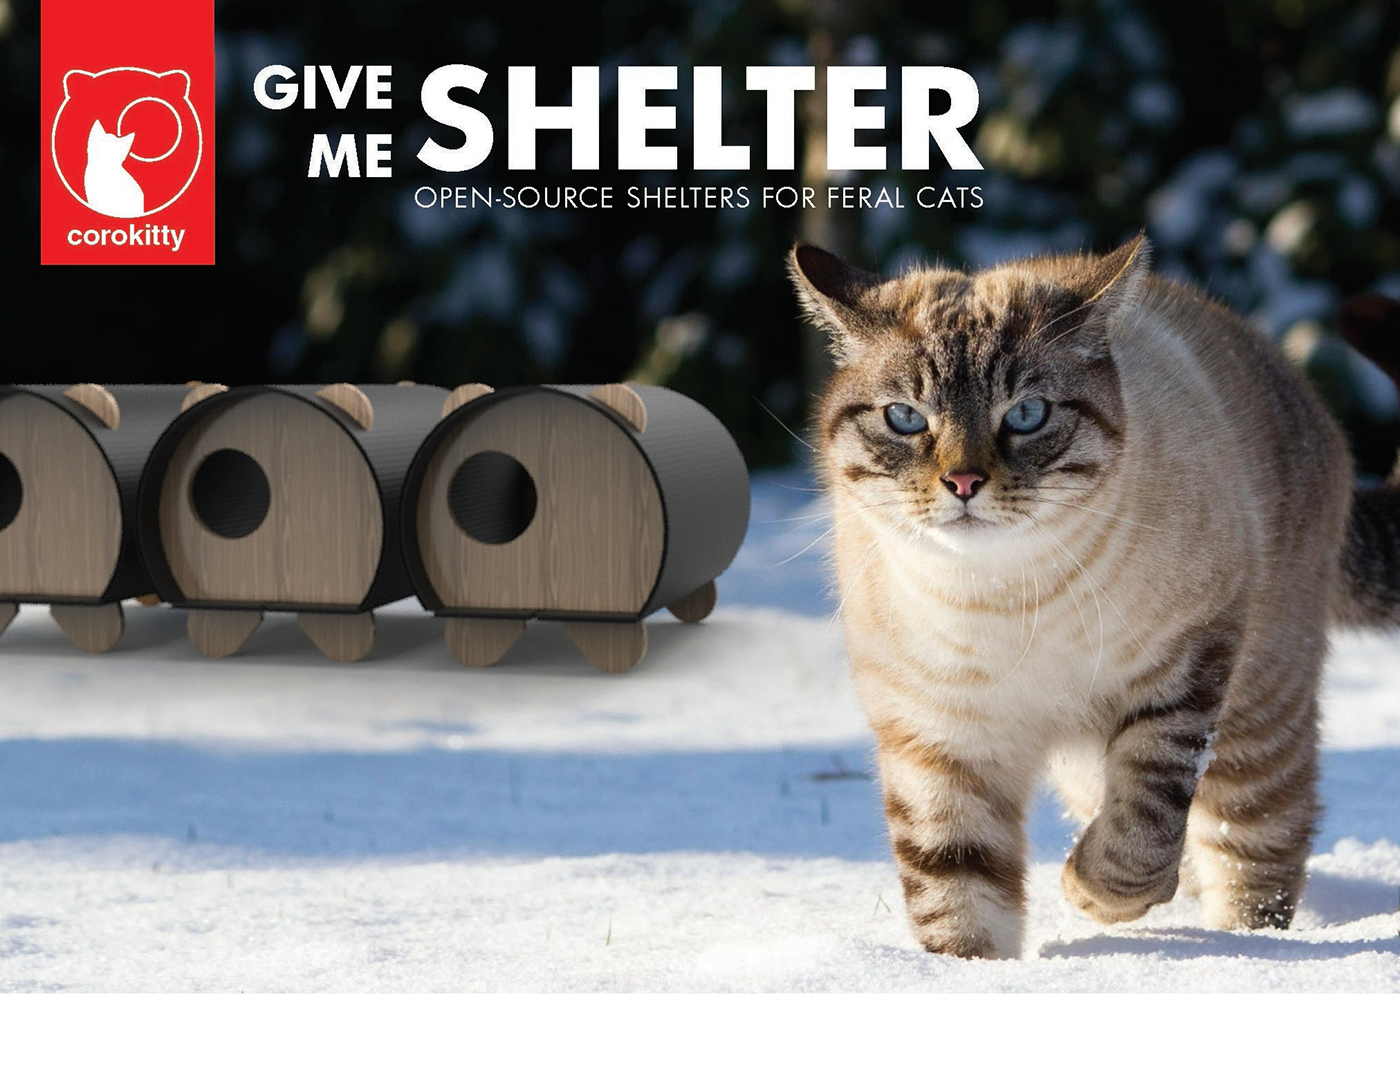 Corokitty is a DIY low cost feral cat shelter. Working